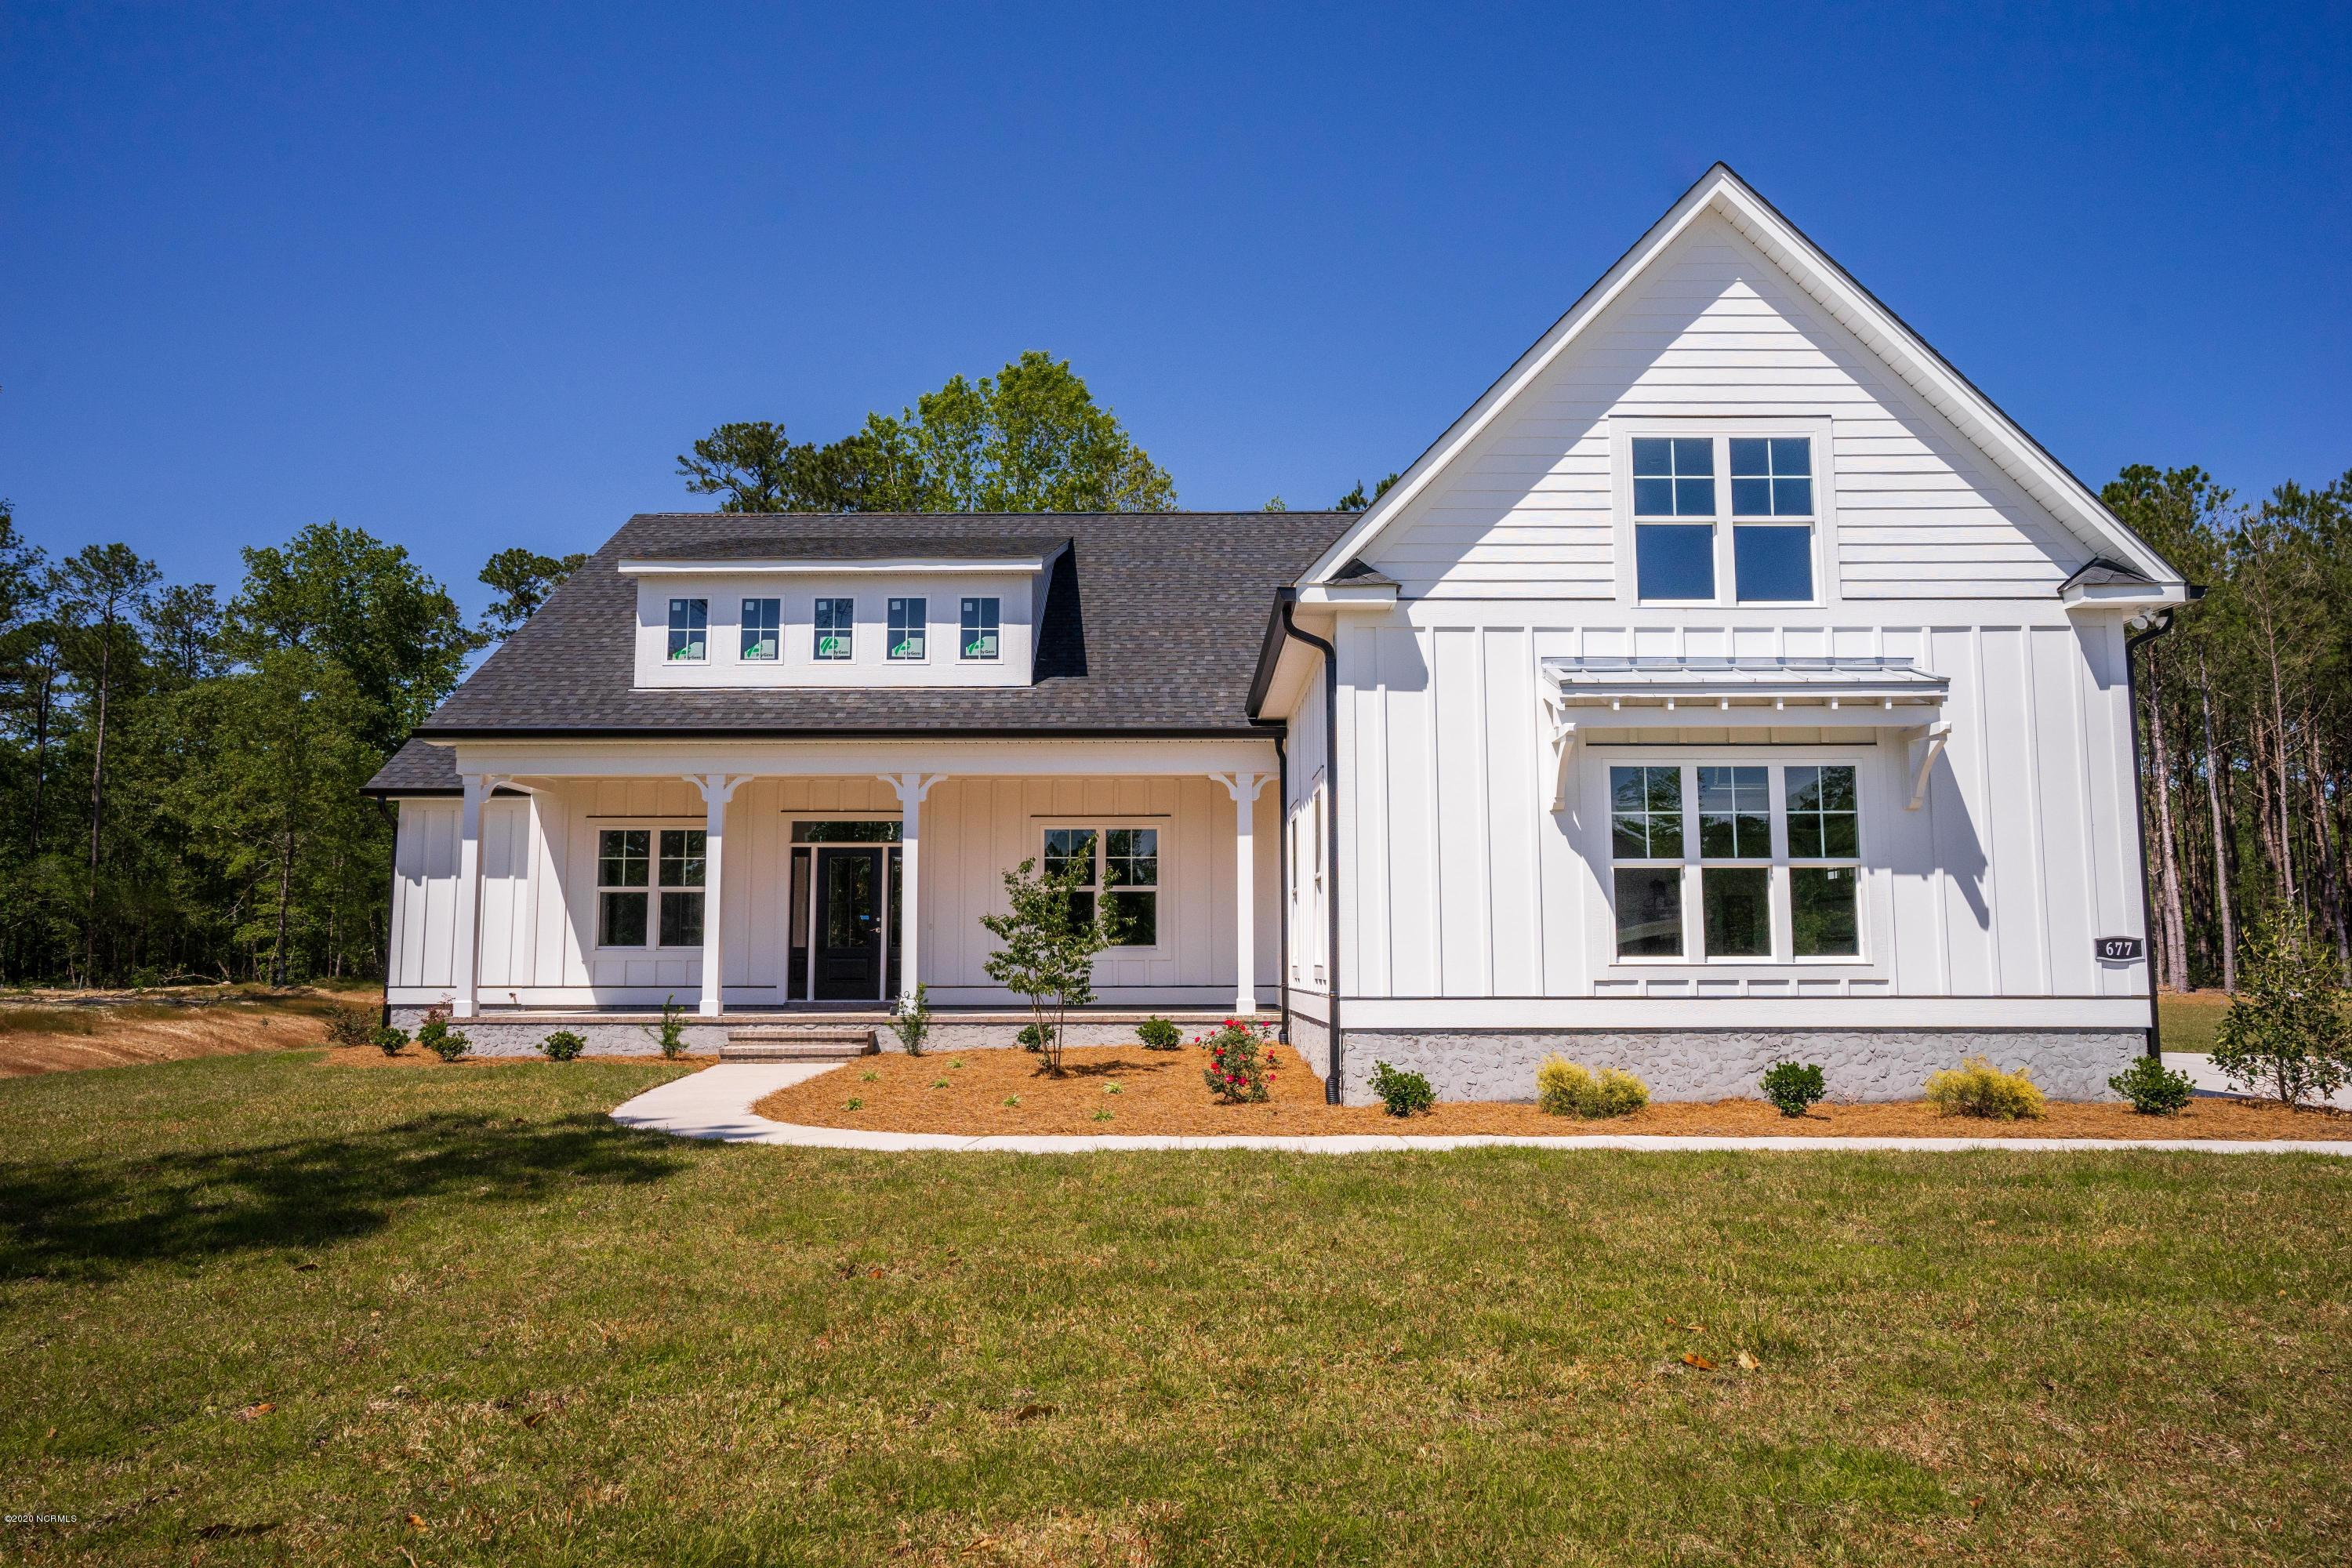 462 Crown Pointe Drive, Hampstead, North Carolina 28443, 4 Bedrooms Bedrooms, ,3 BathroomsBathrooms,Residential,For Sale,Crown Pointe,100217504